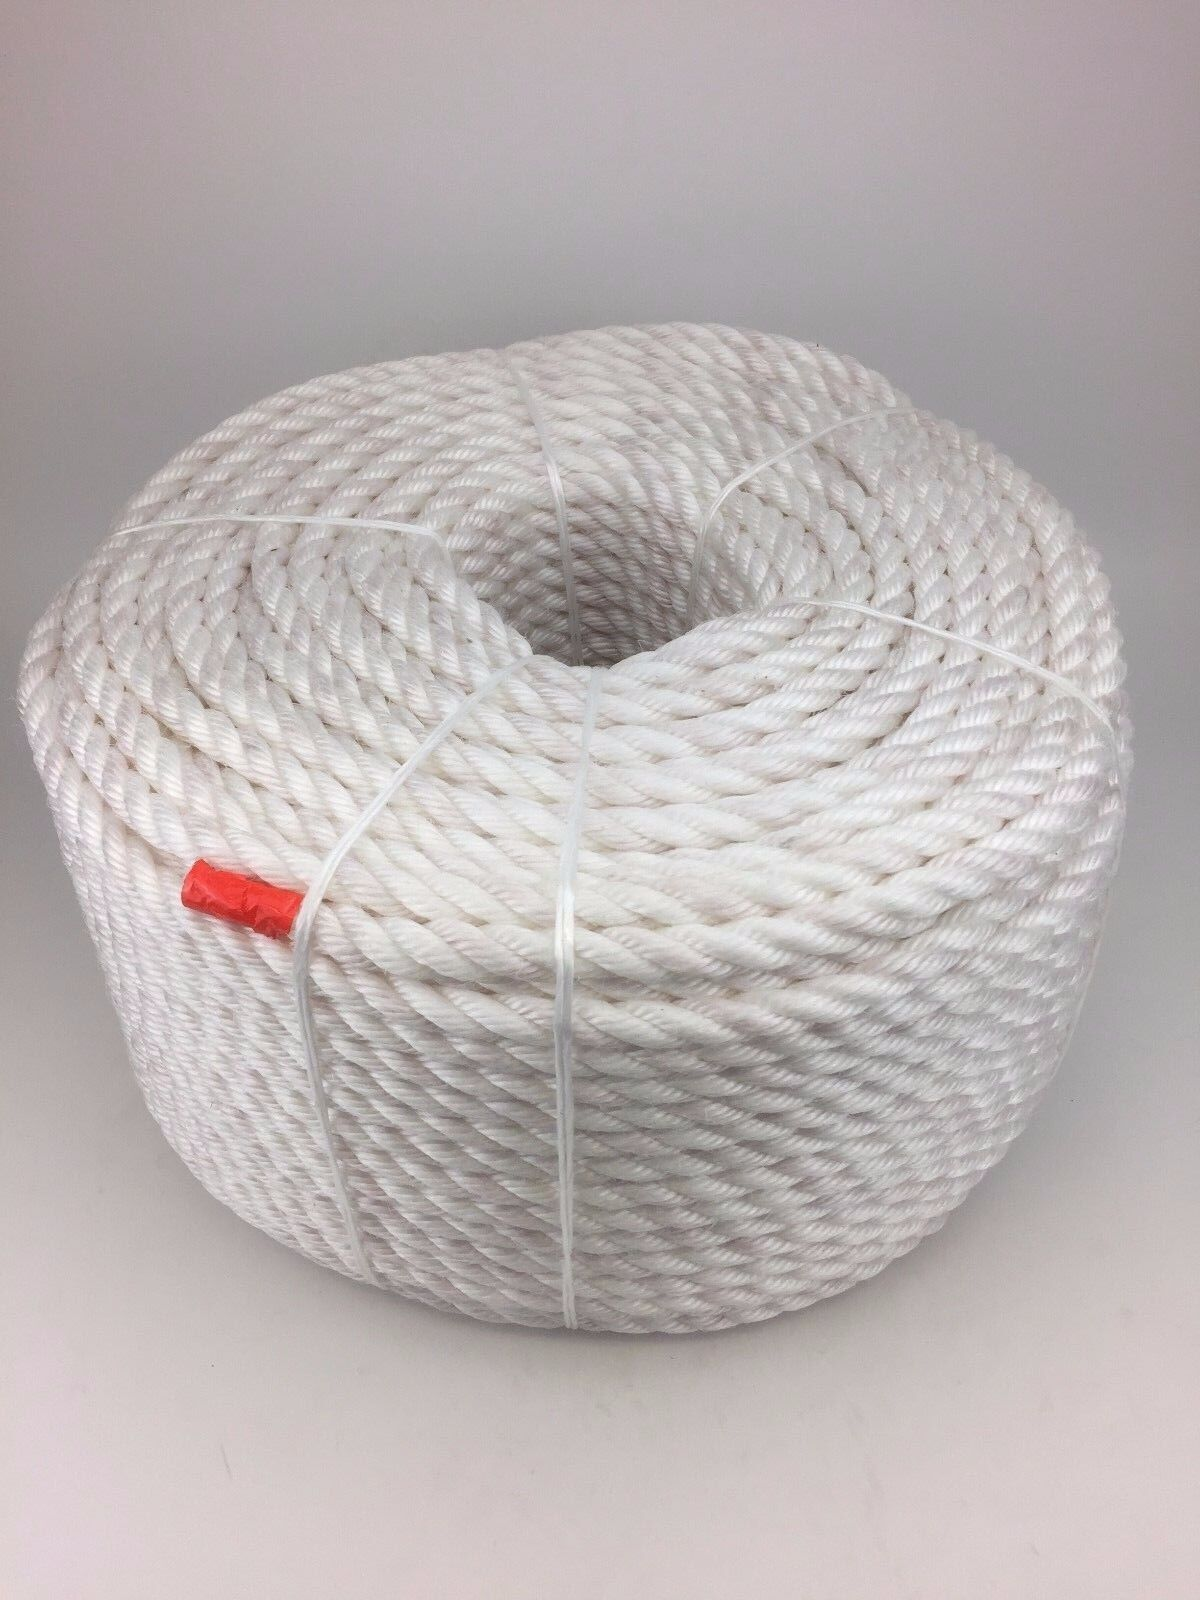 10mm White Staplespun Rope x 220m Coil, Boat Anchor Mooring Scaffolding Lifting